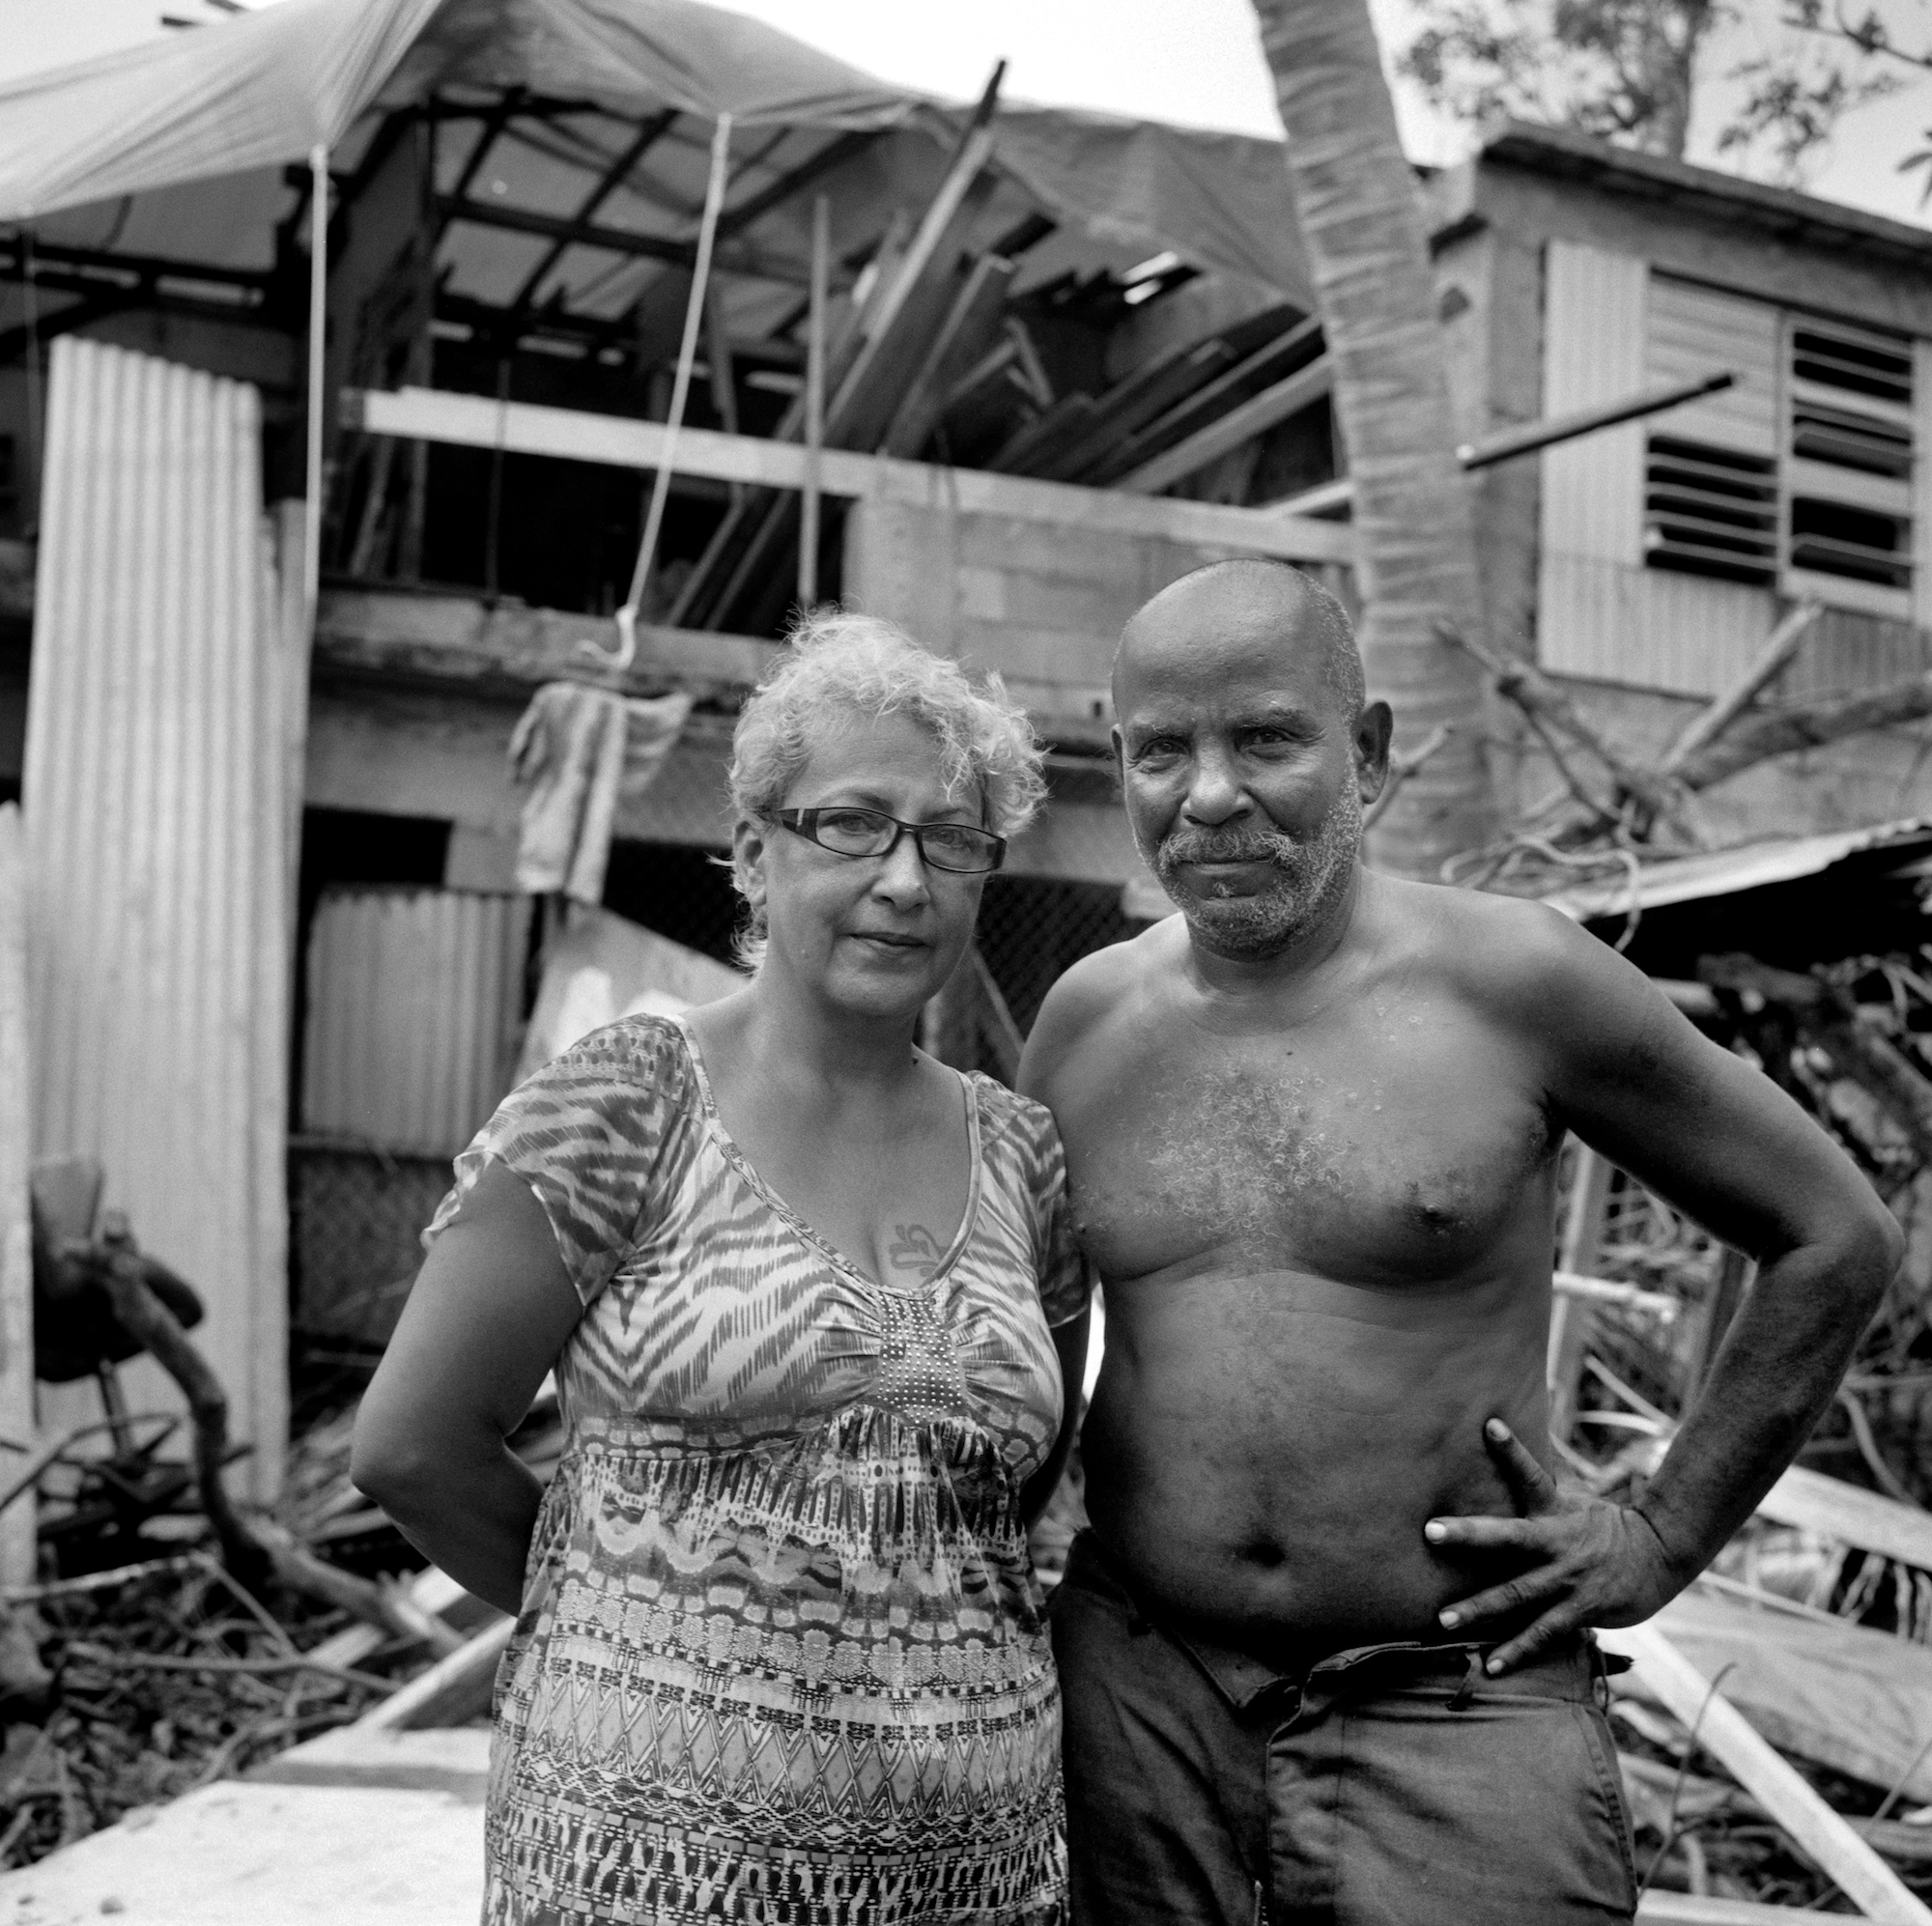 Ilda Sanchez 56, with her husband Alberto Luquis, 62. During the hurricane they found a dead six-foot long alligator in their backyard. The house was also under water up to his chest.